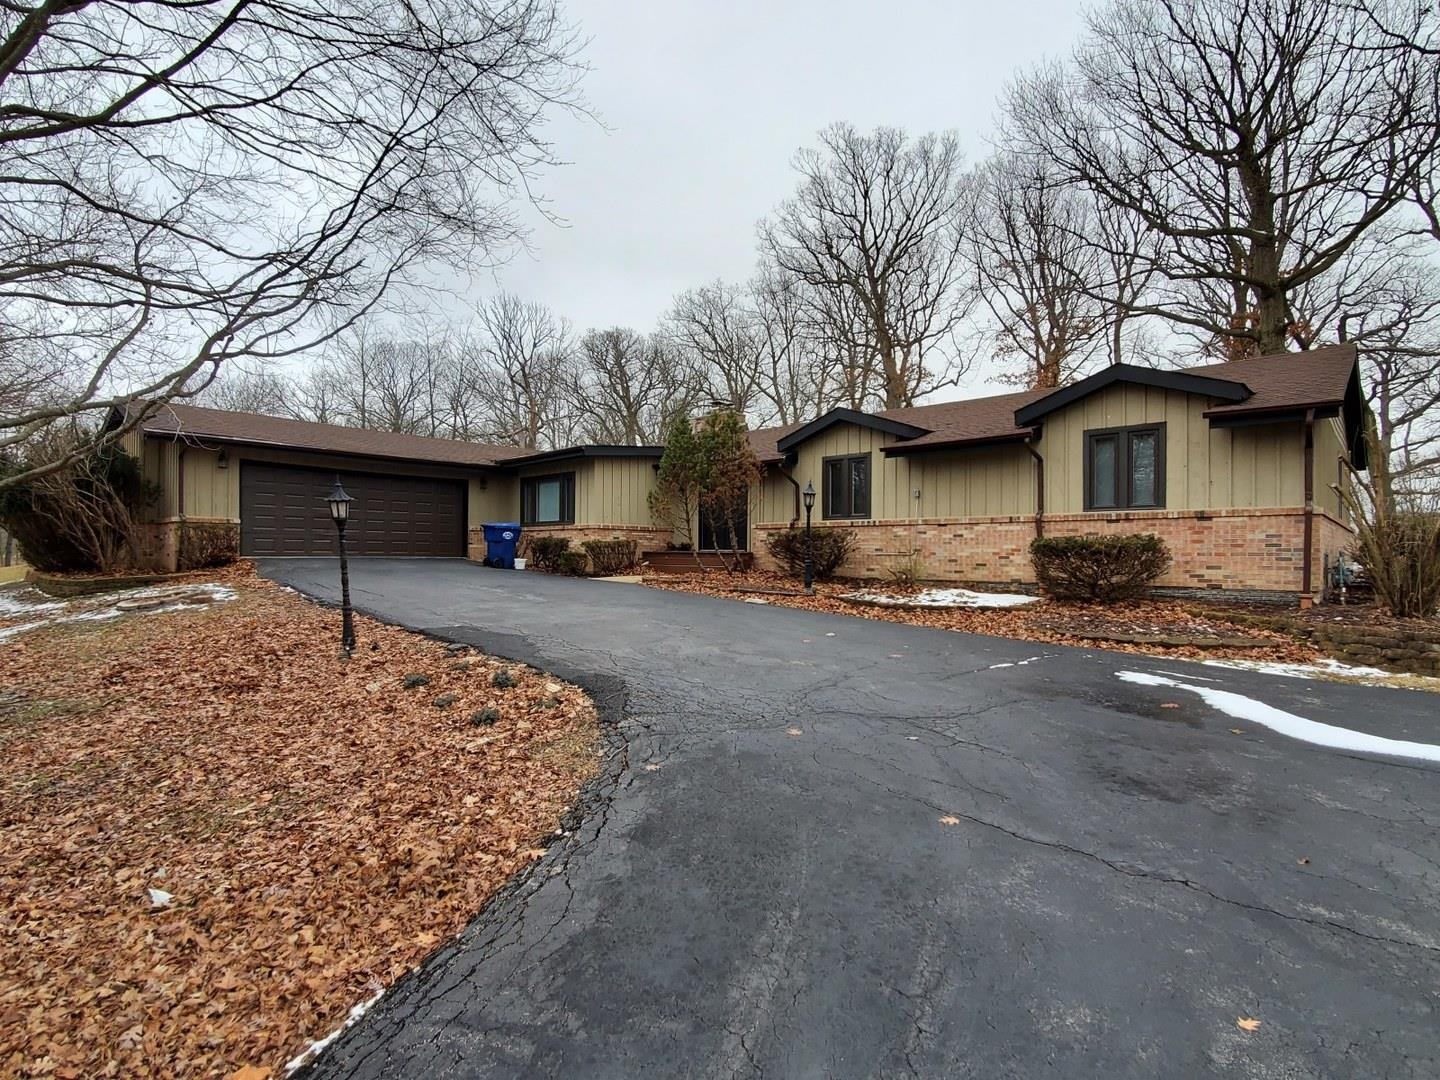 1840 E RAINBOW Lane, Crete, IL 60417 - #: 10639851